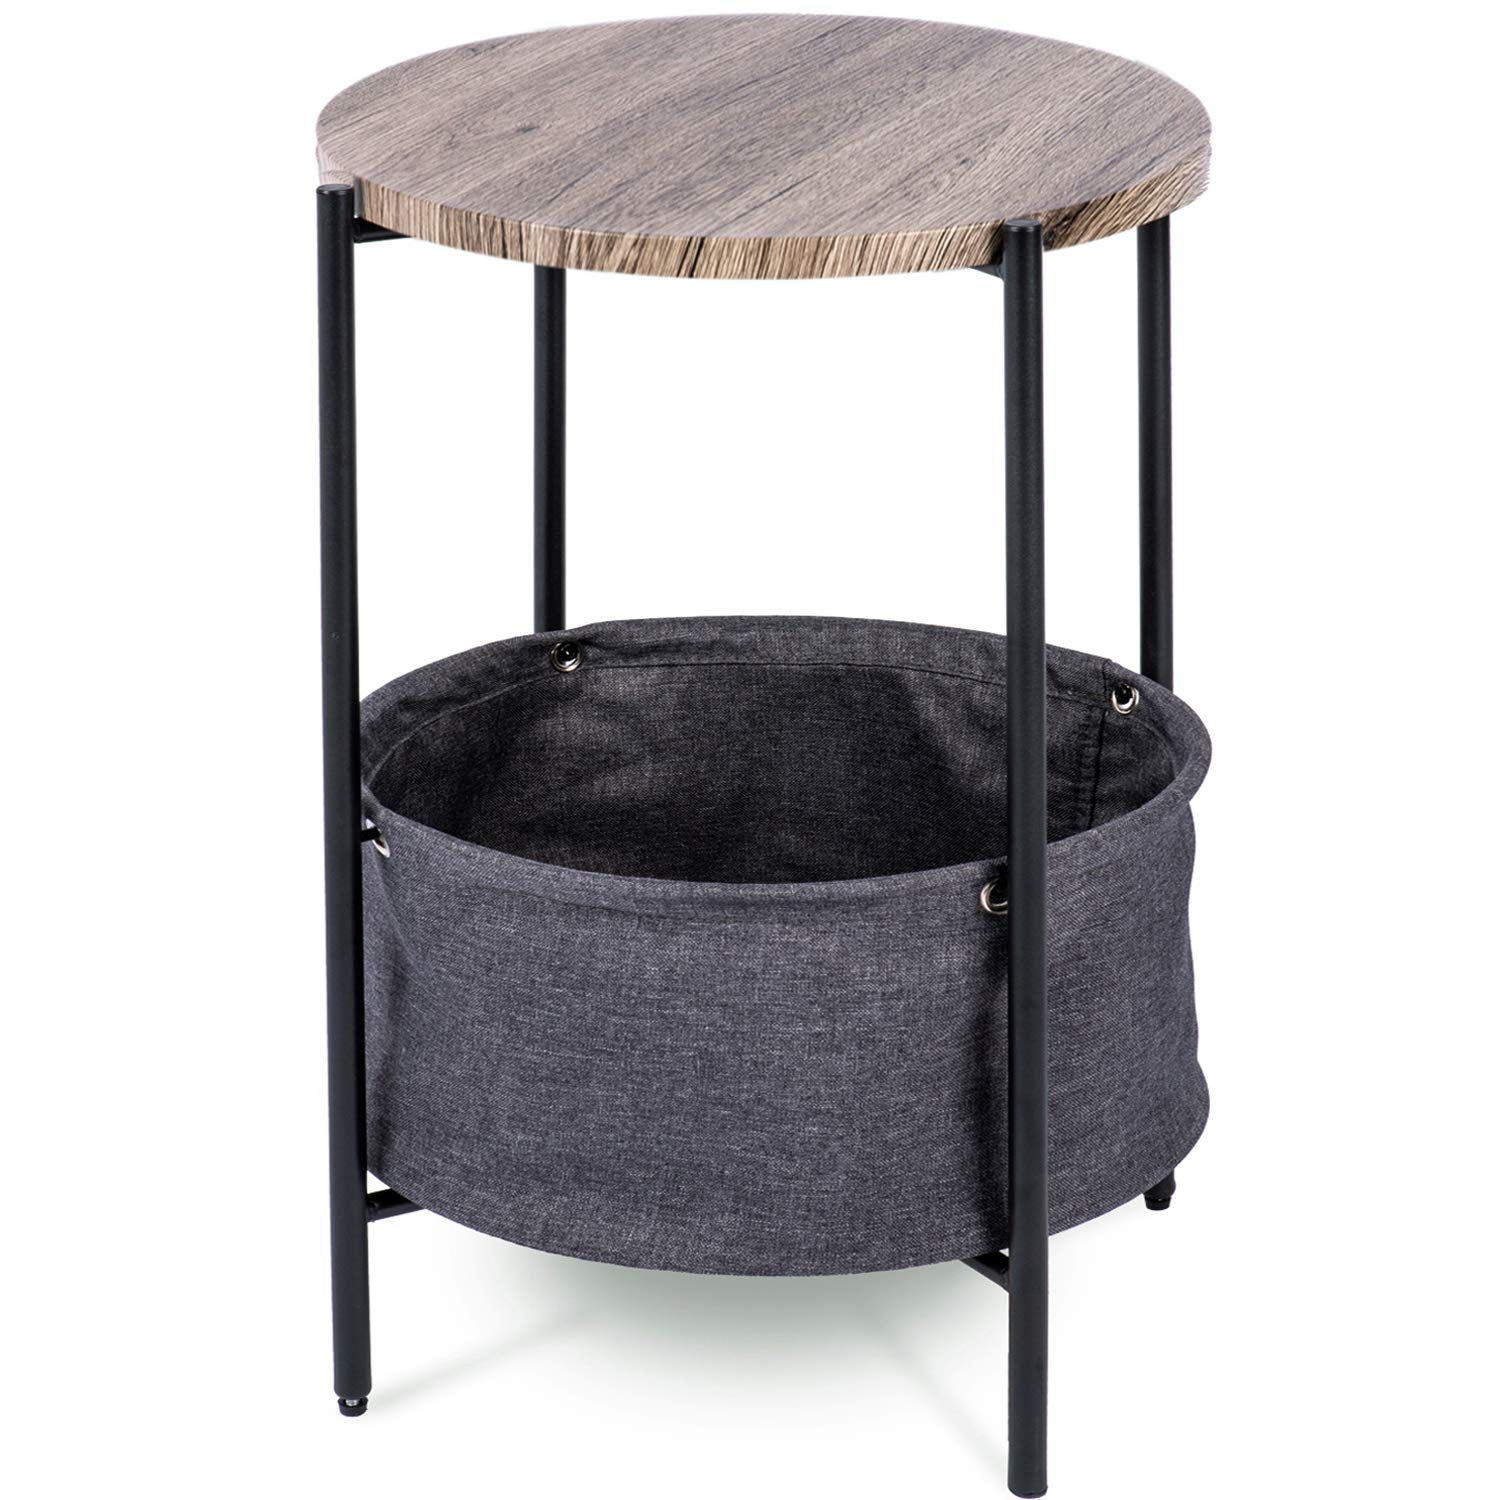 Urest Side Table with Fabric Storage / Modern Round End Table / Night Stand / Coffee Table, Grey by Urest